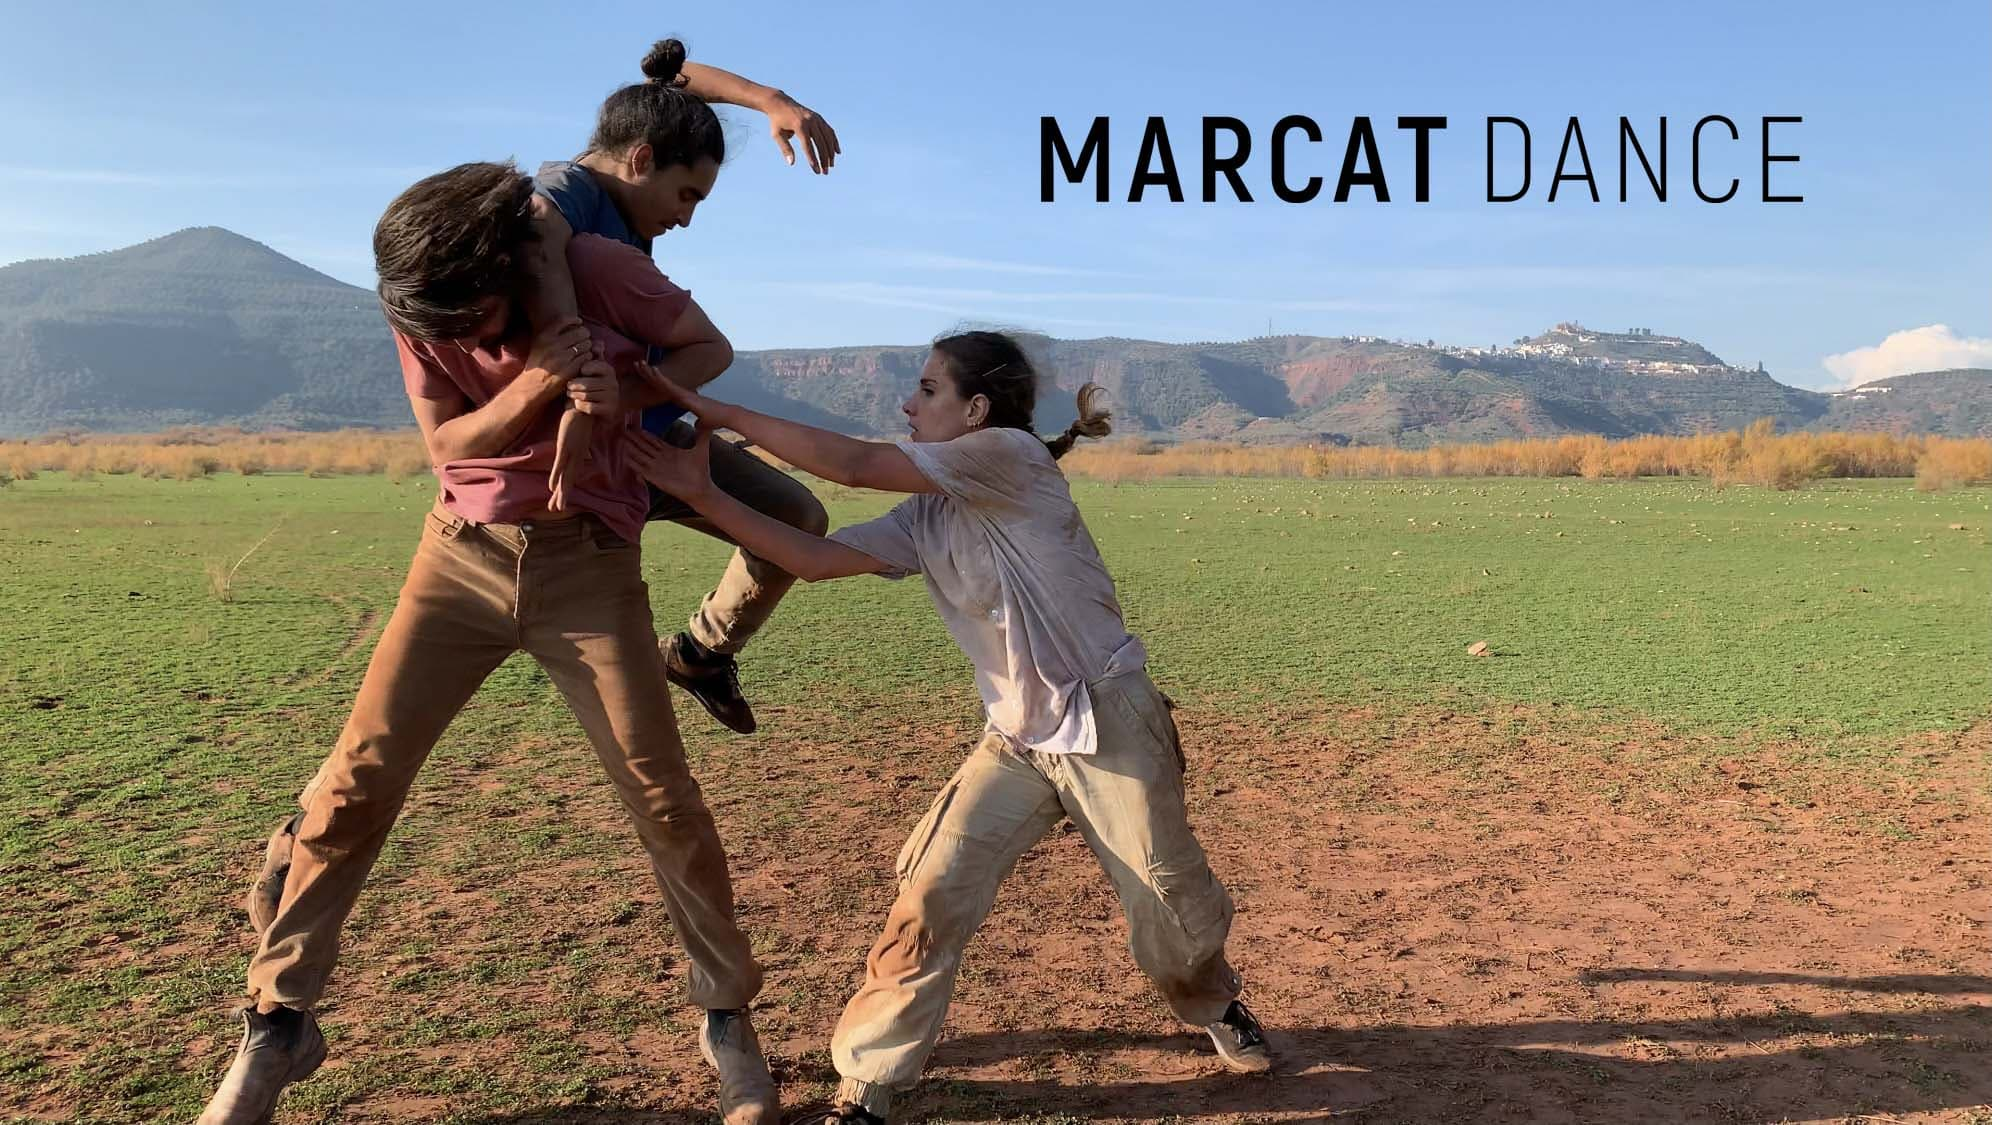 Head picture for the May issue of Marcat Dance newsletter